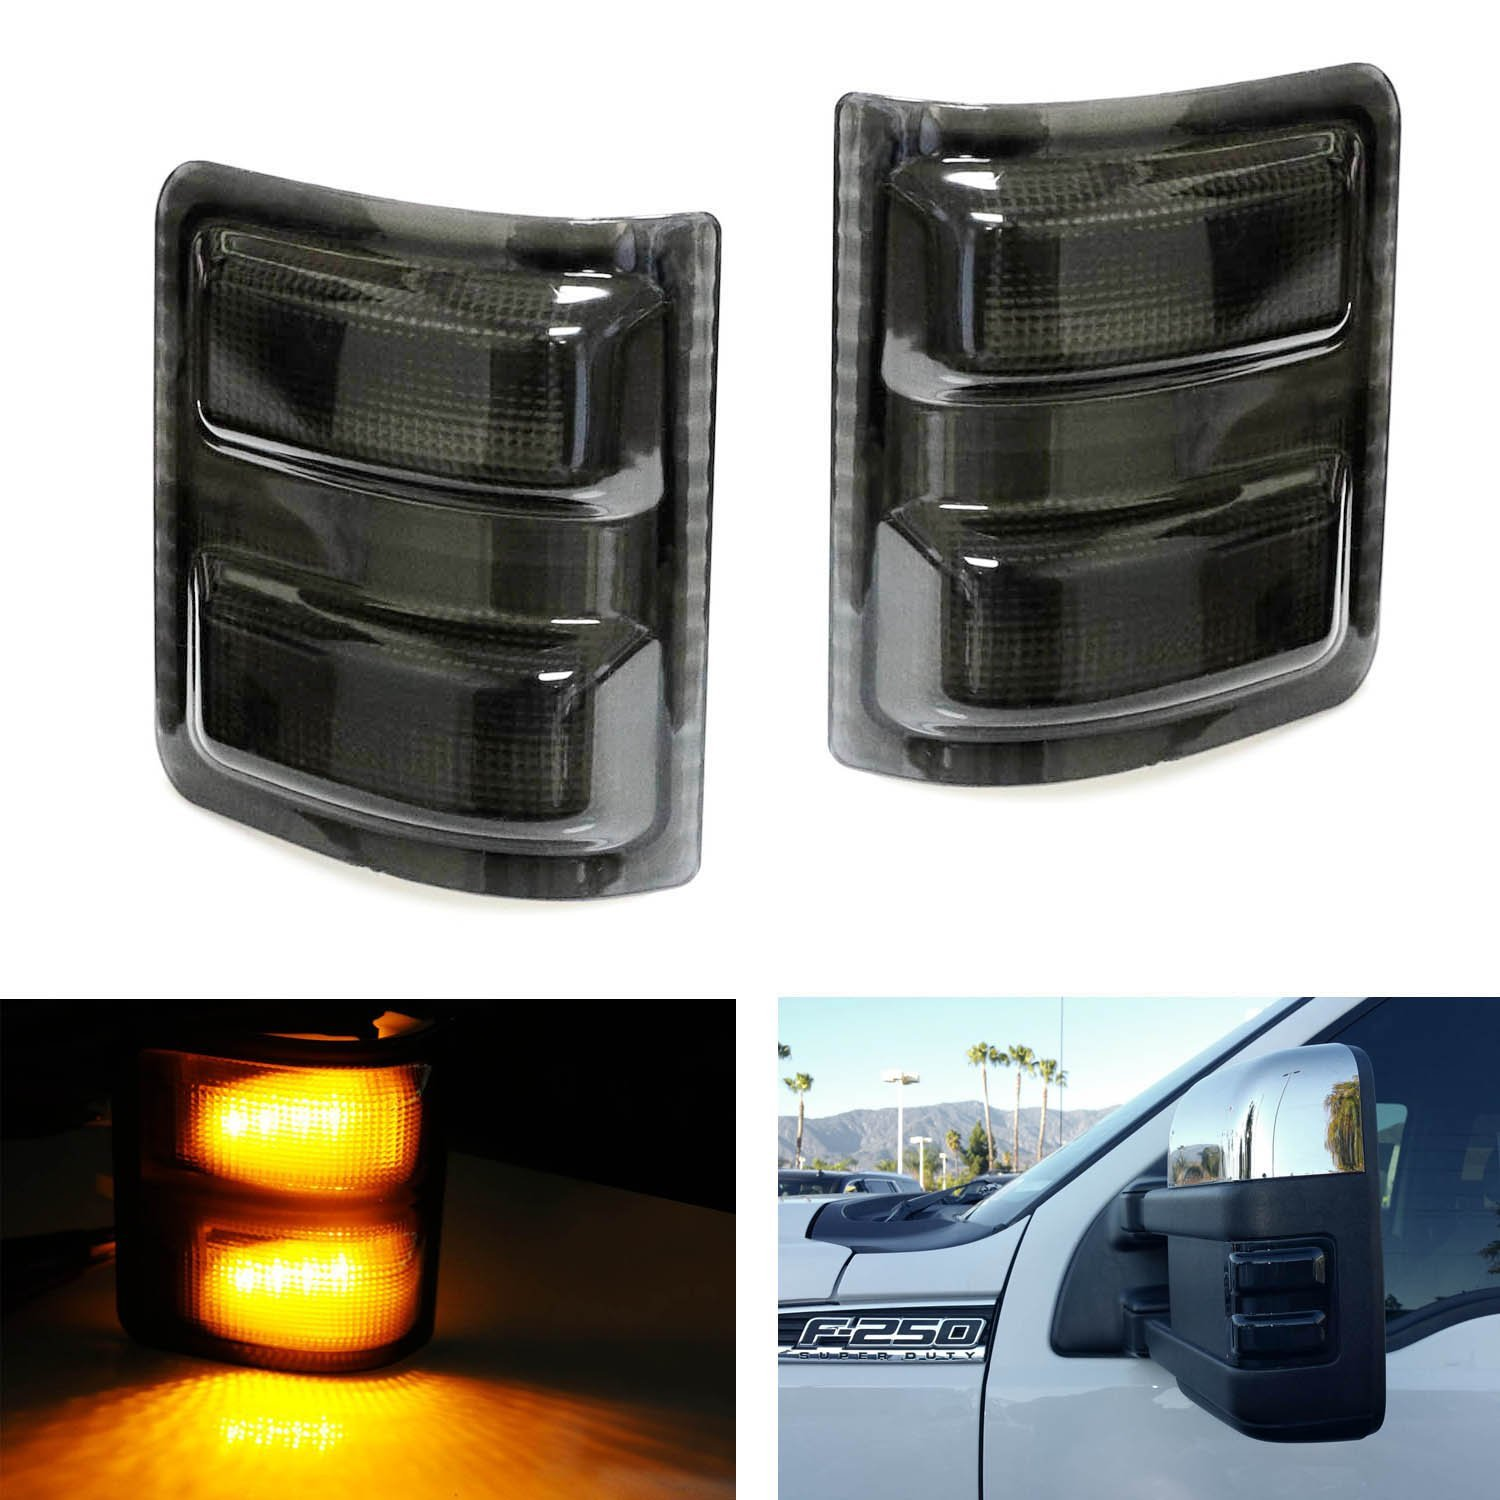 hight resolution of ijdmtoy 2pcs smoked lens led side mirror marker lights for 2008 2016 ford f250 f350 f450 f550 super duty walmart com